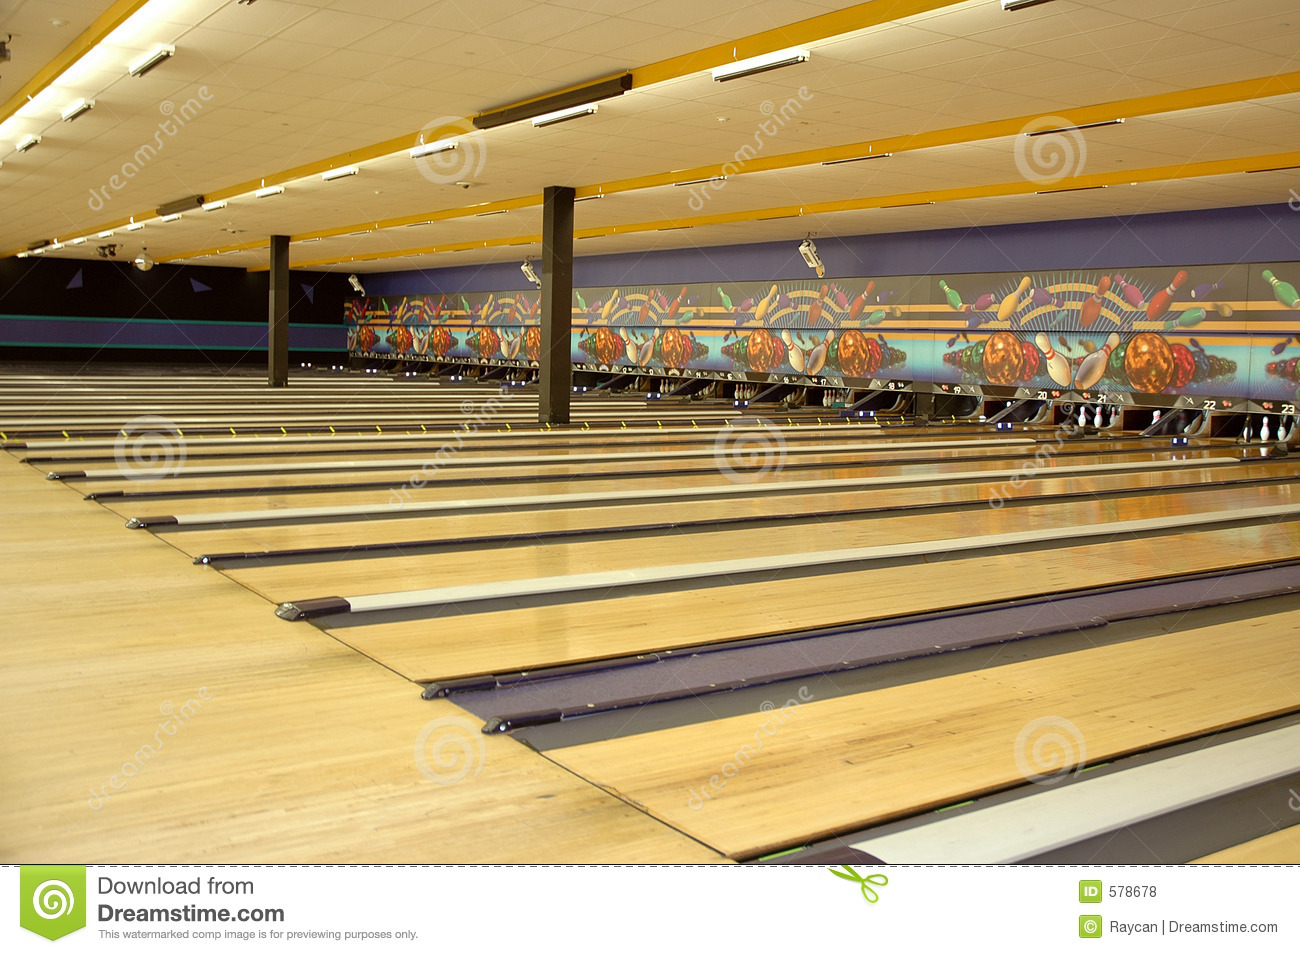 Bowling alley lane rows of bowling lanes at a